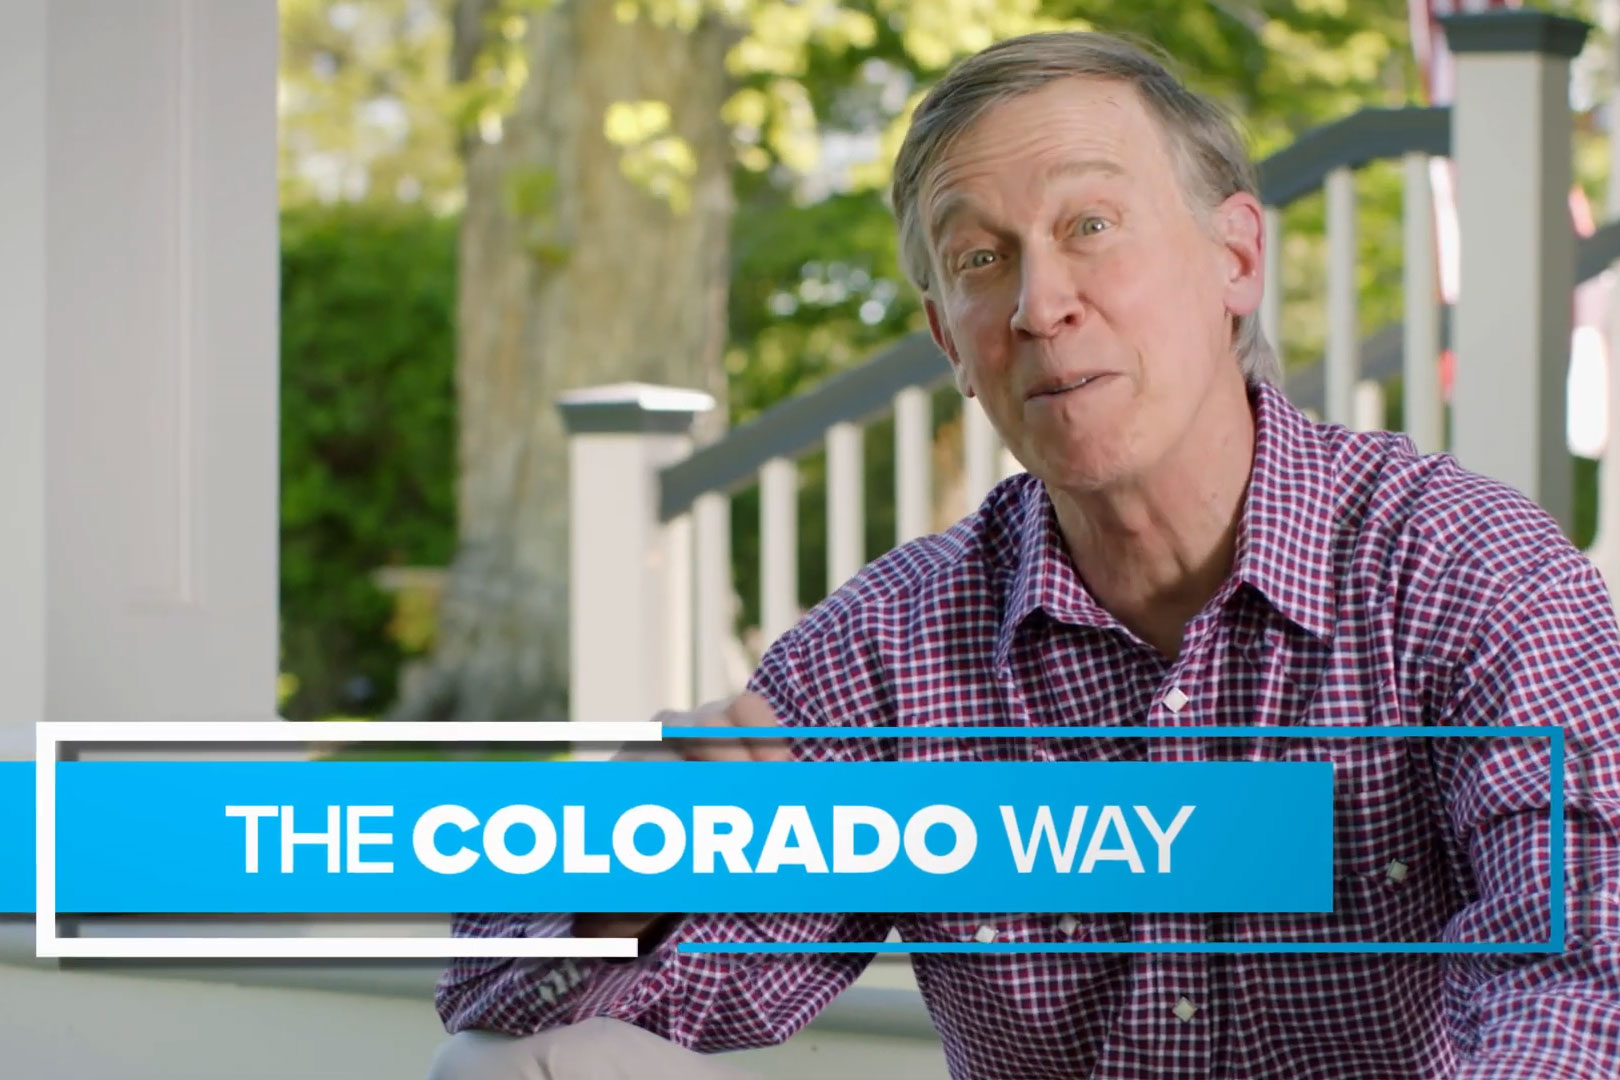 A screencap from candidate John Hickenlooper's first primary ad that is running ahead of the June 30 primary election day.